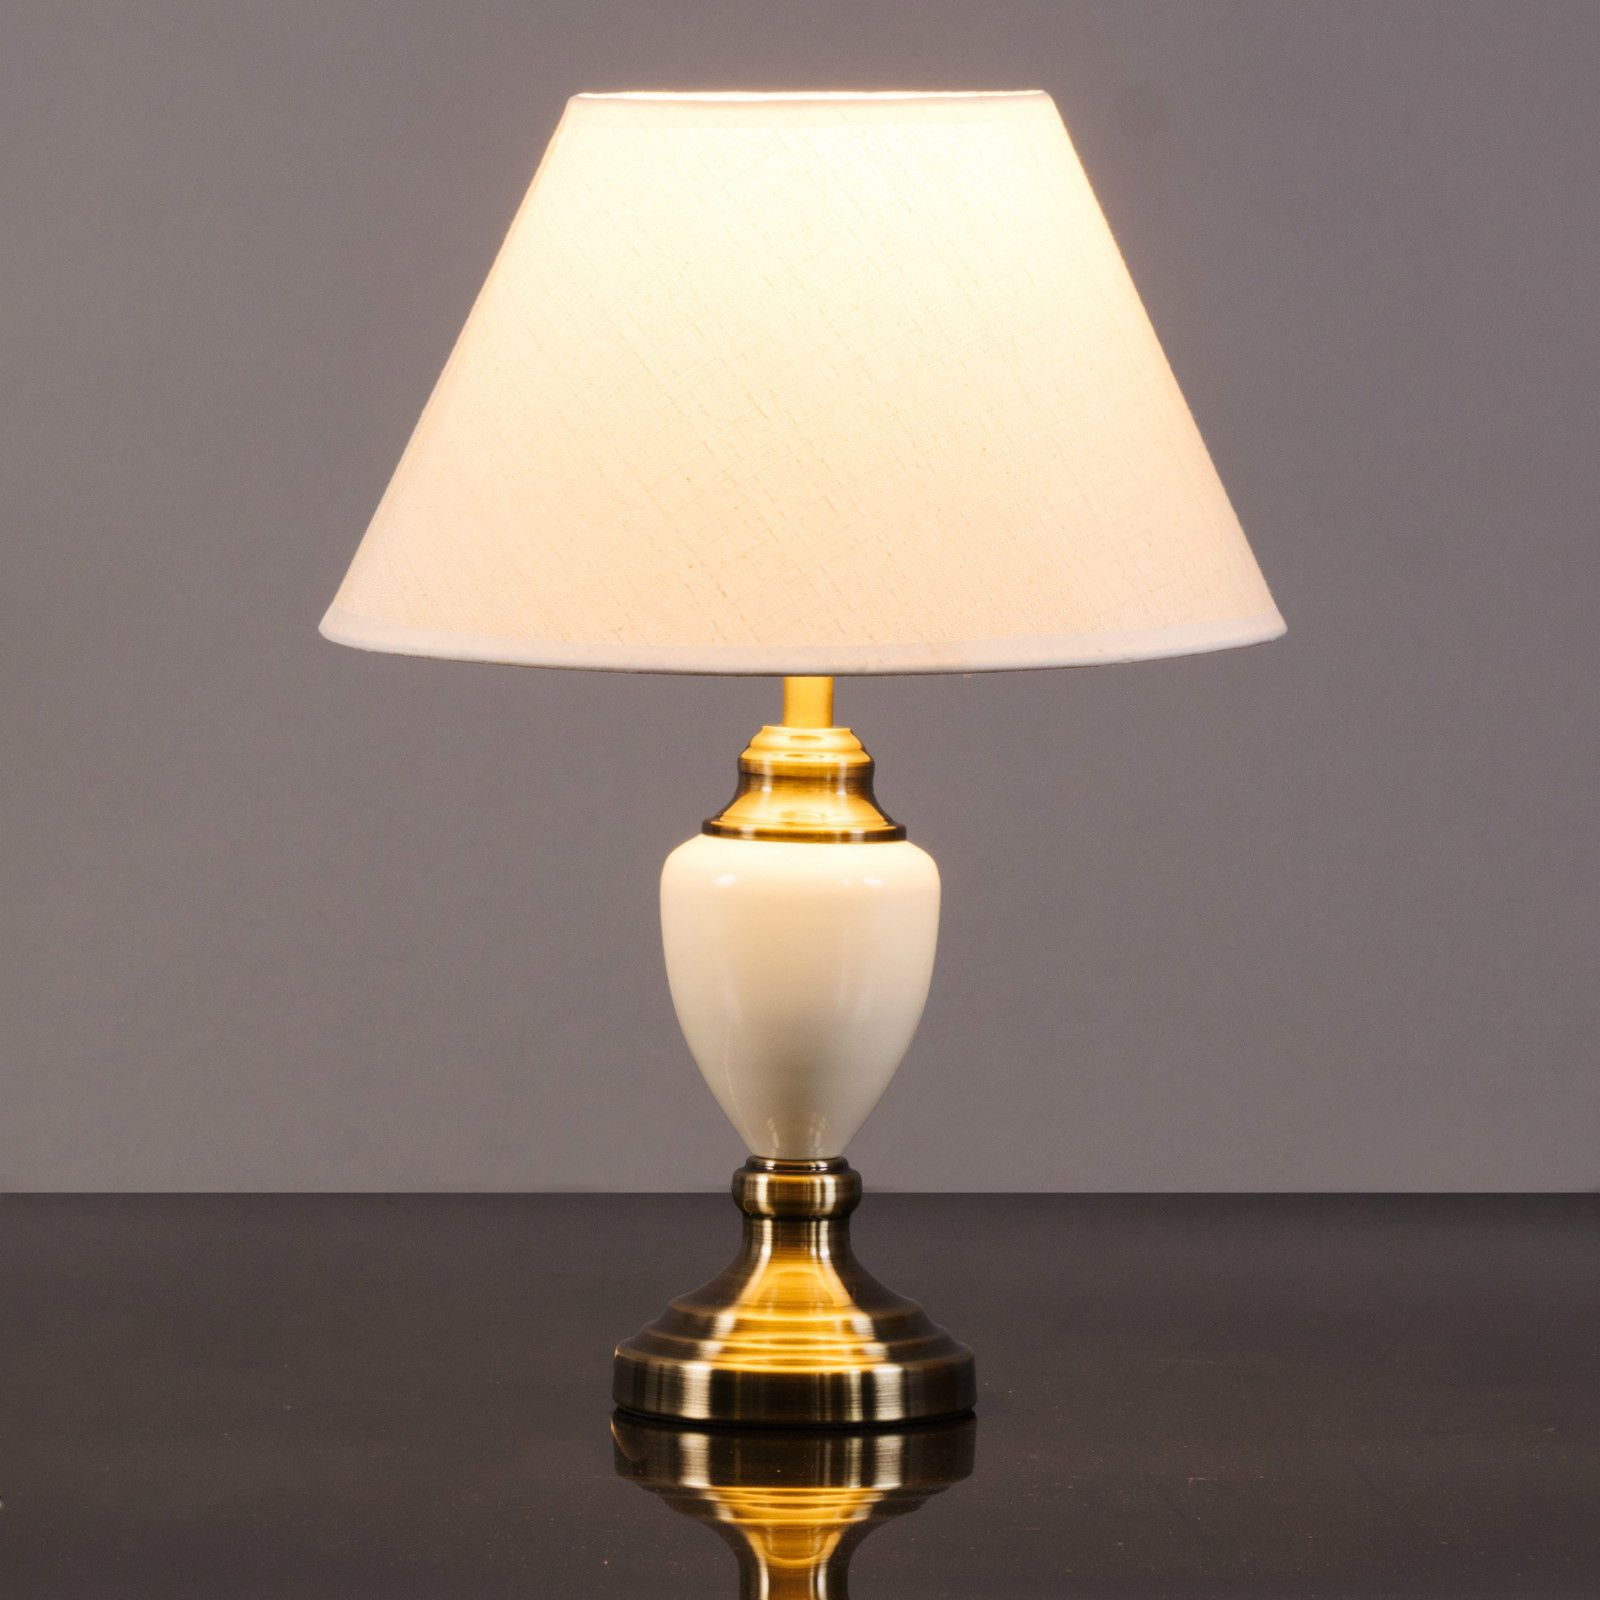 Beautiful Table Lamps For Bedroom In 2020 Classic Table Lamp